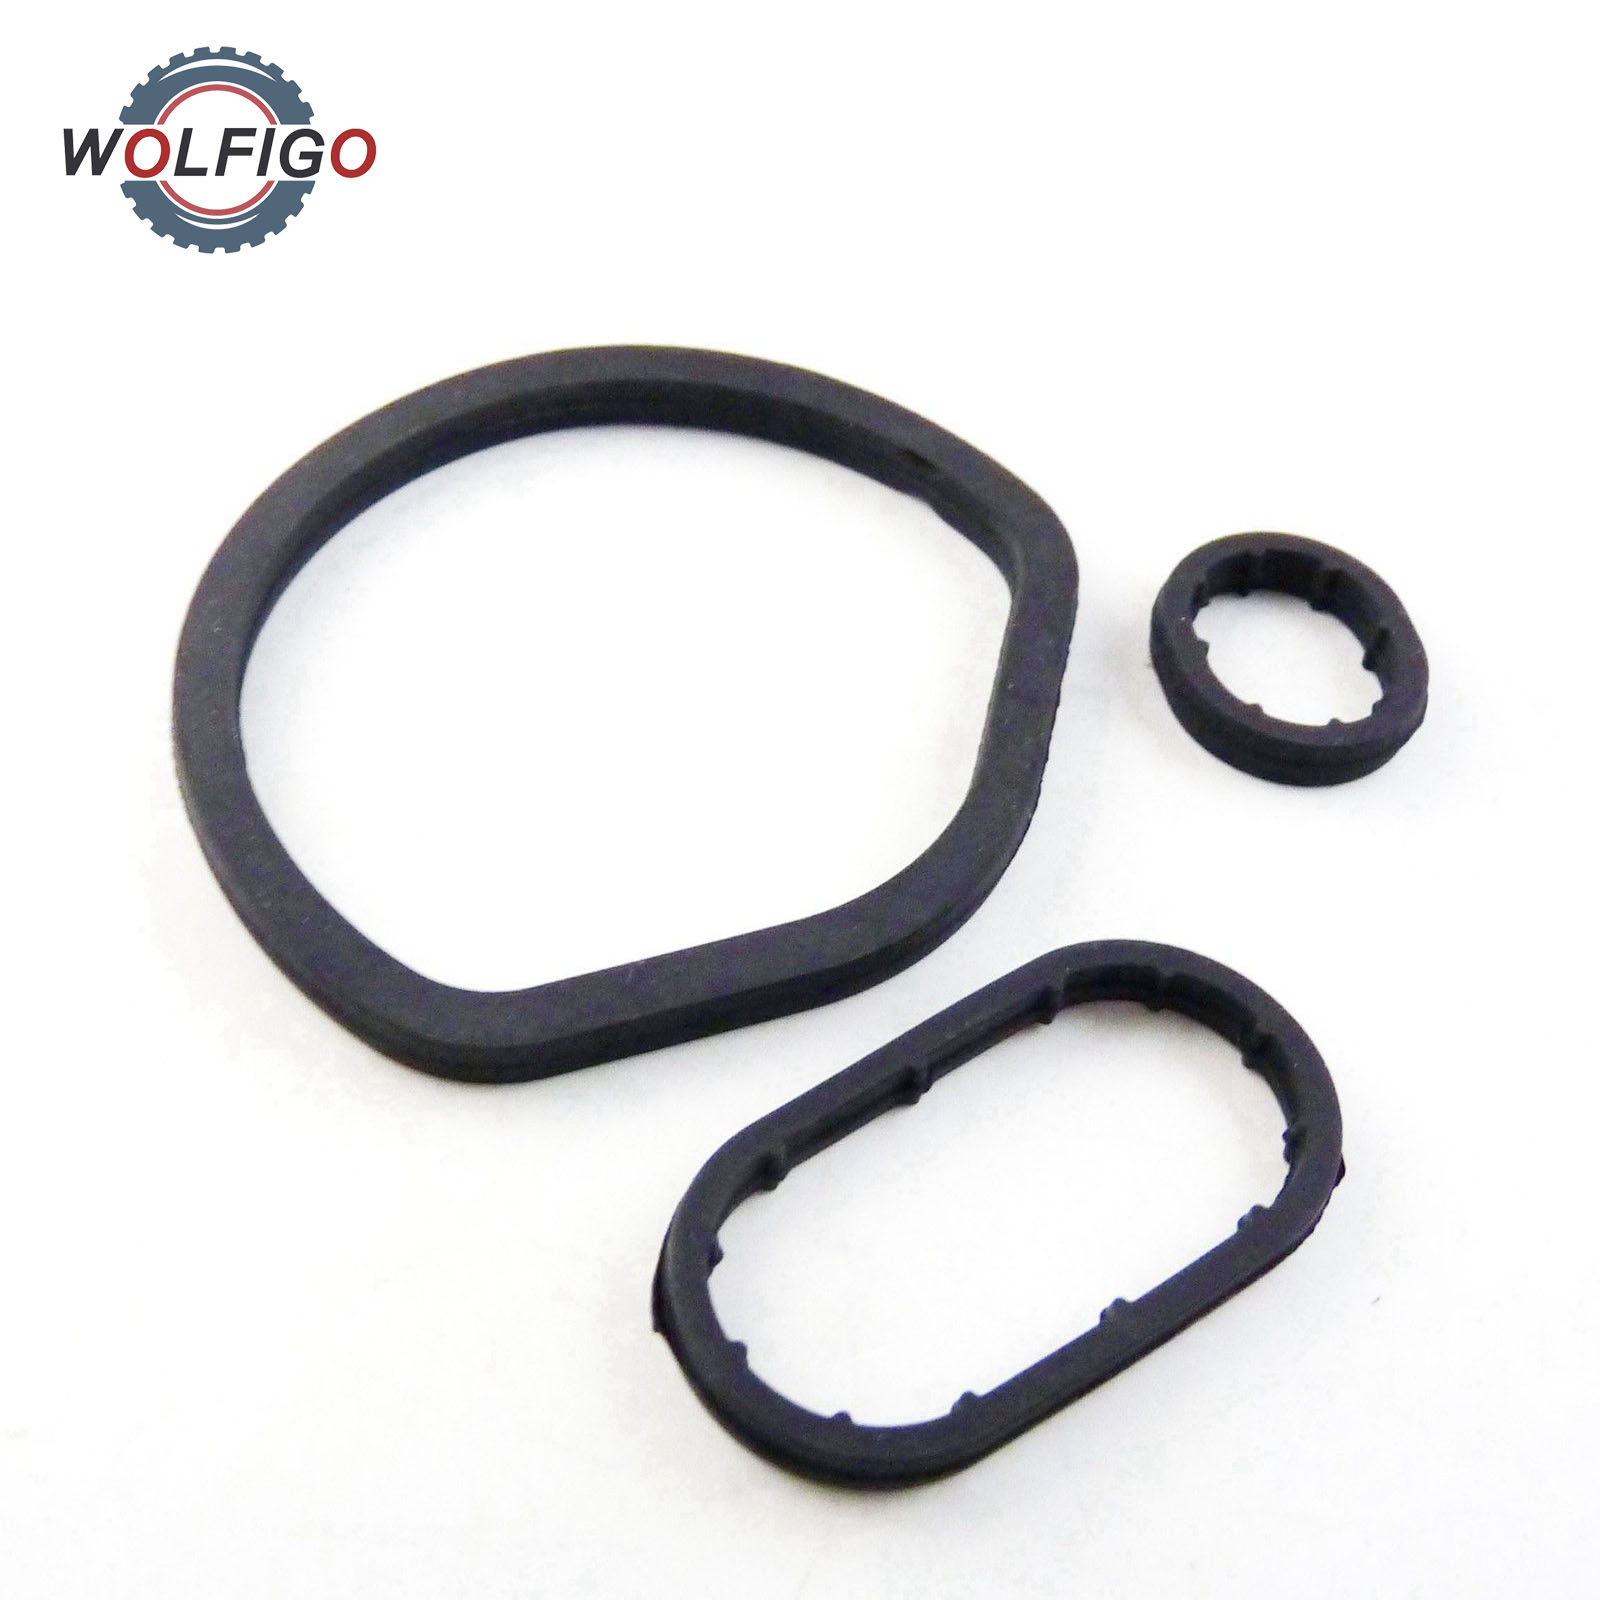 Wolfigo 3pcs Set Engine Oil Cooler Seal Kit 1121840361 121840061 For Wiring Harness Rebuild Service Mercedes Mercedesbenz Benz C280 E320 G500 S430 E500 Slk320 In Coolers From Automobiles